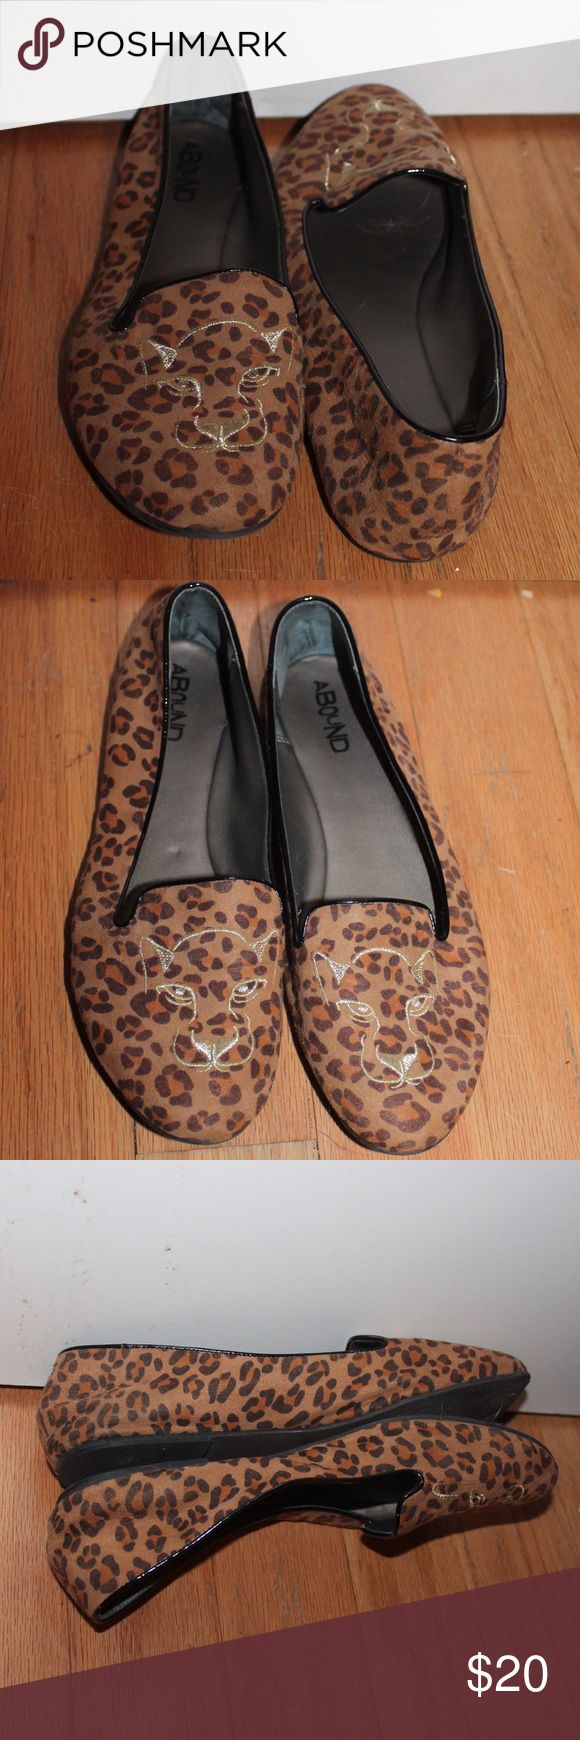 animal print espadrilles loafers cat face toes 🐯 animal print espadrilles with stitched cat face 🐯 size 9M fabric upper synthetic sole made in china by ABOUND Charlotte Olympia Shoes